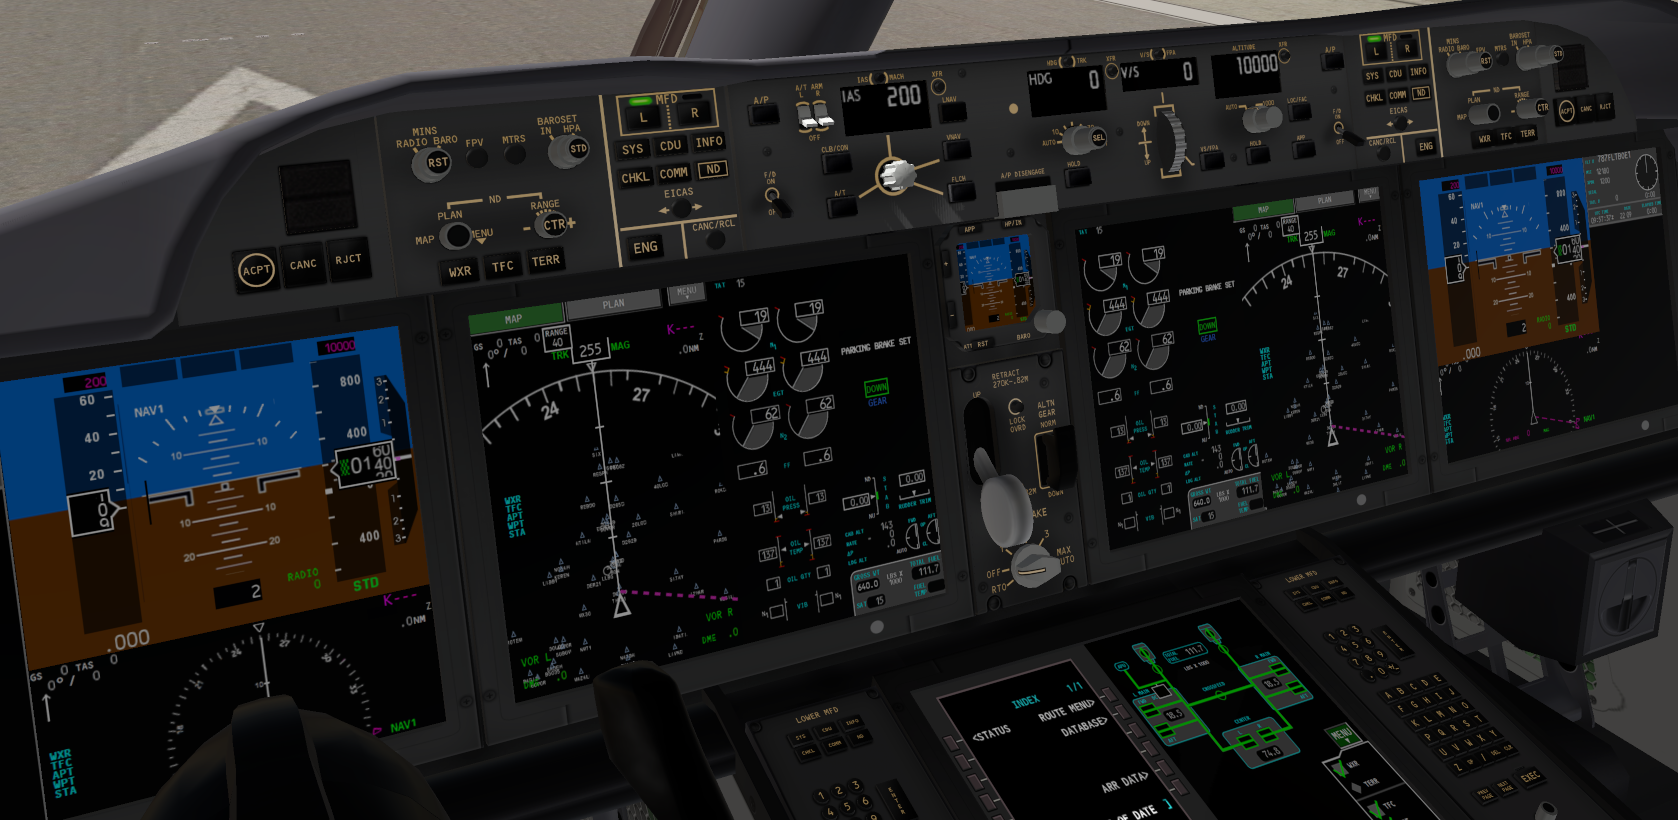 Magknight Boeing 787-9 X-PLANE 10